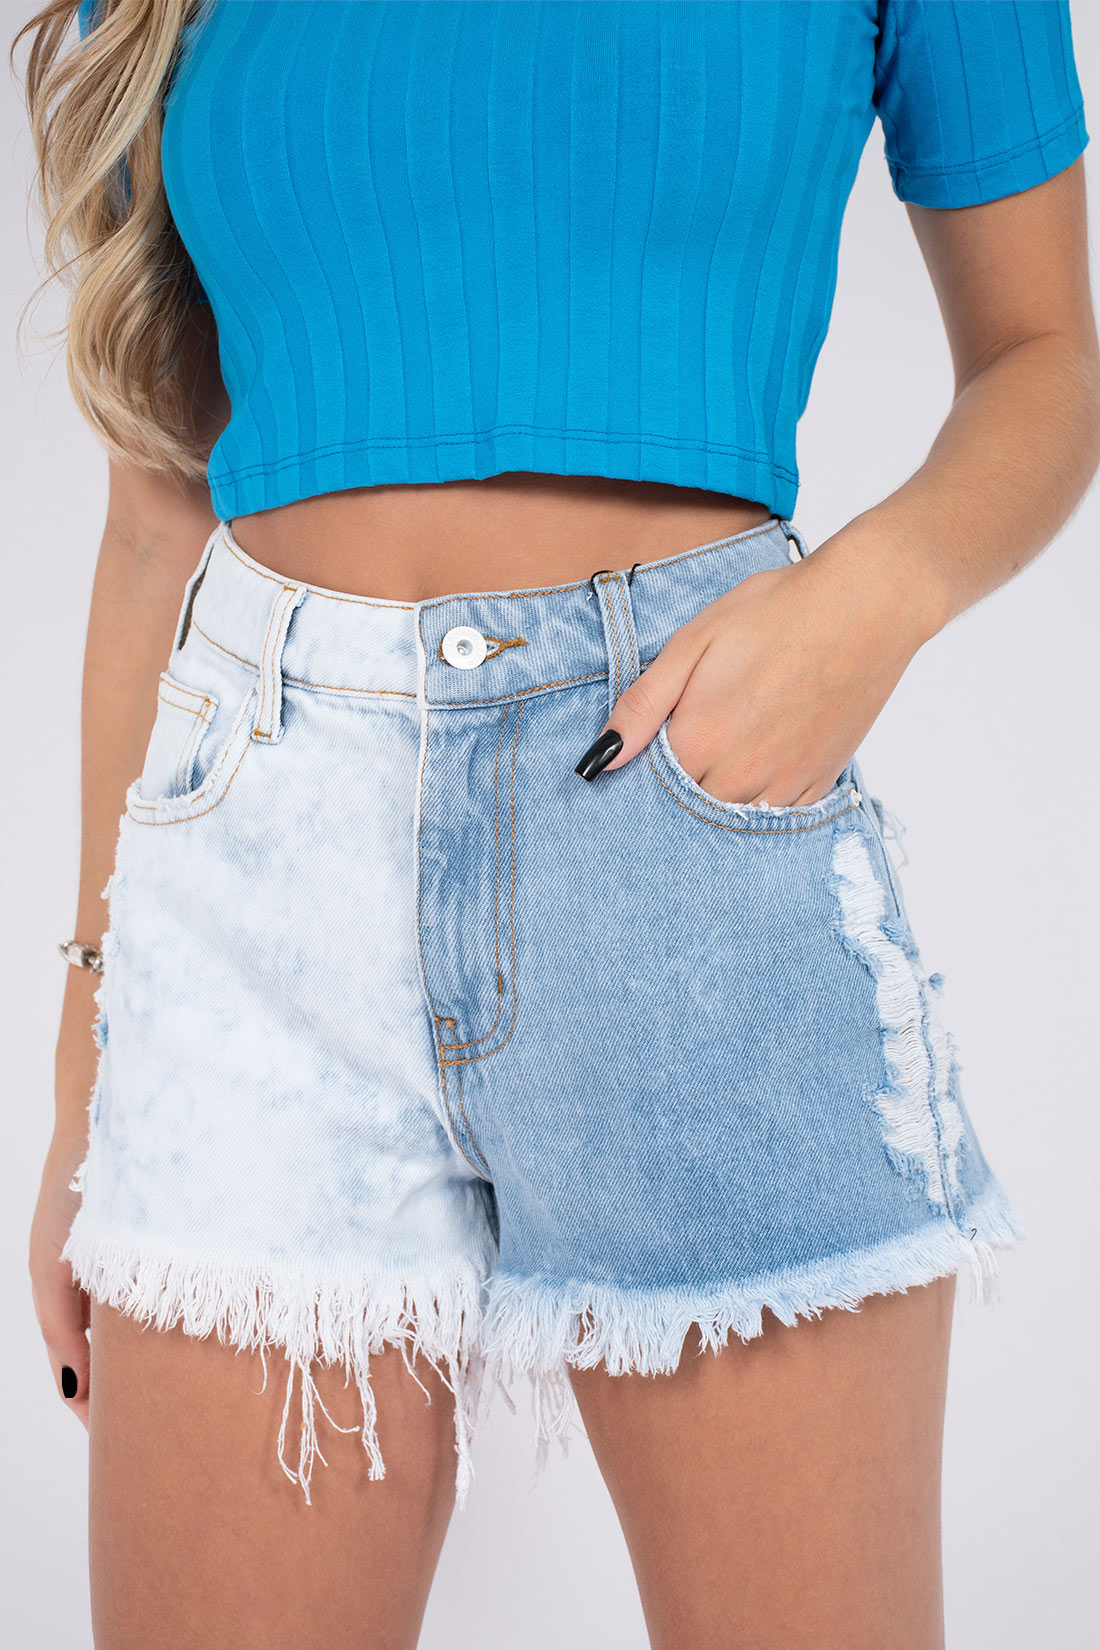 Shorts Jeans Sommer Taylor